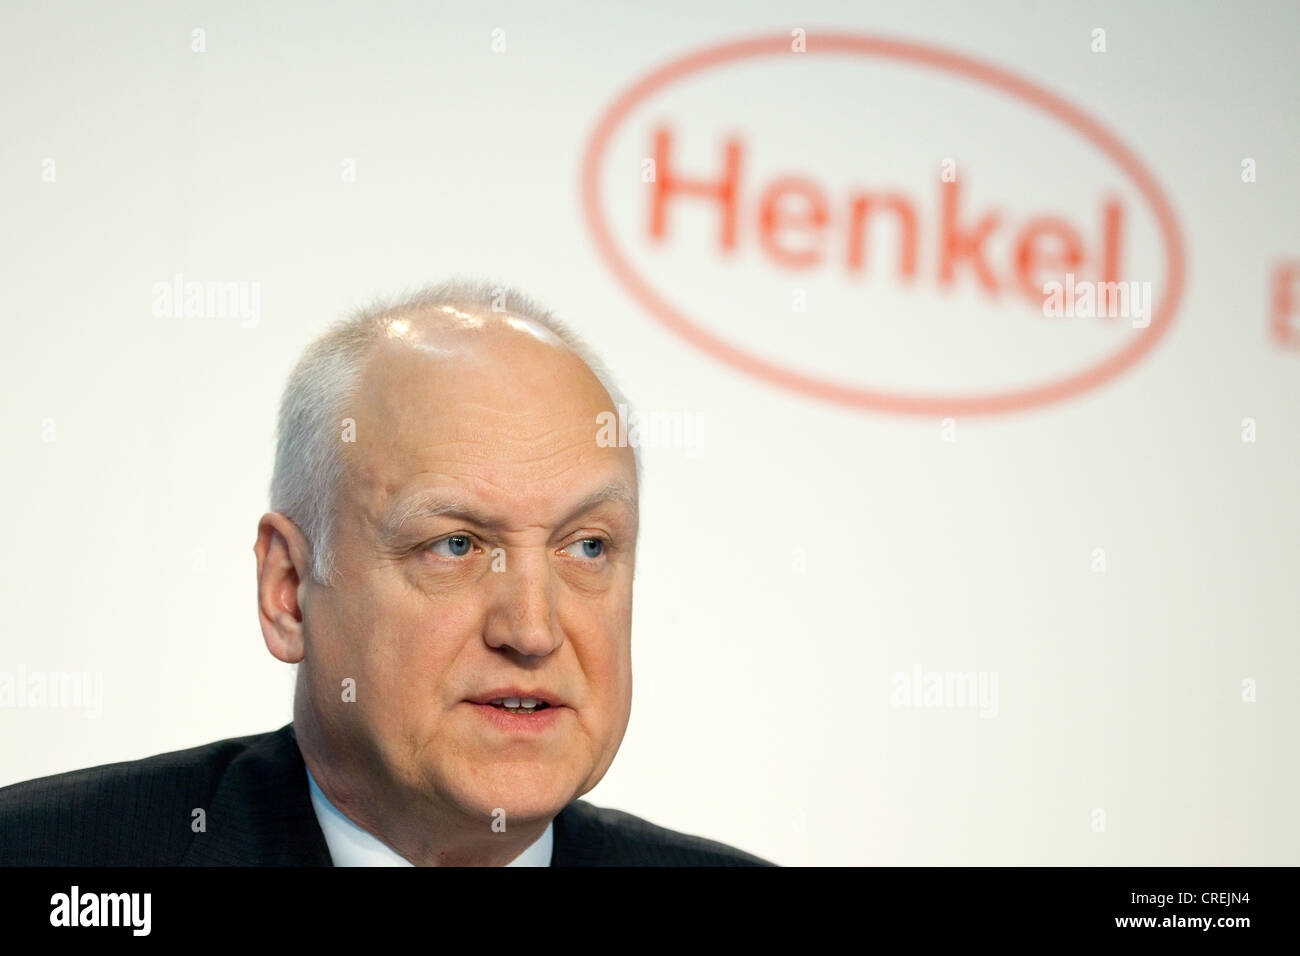 Lothar Steinebach, Chief Financial Officer, CFO, of Henkel AG & Co.KG during the financial statement press conference on Stock Photo